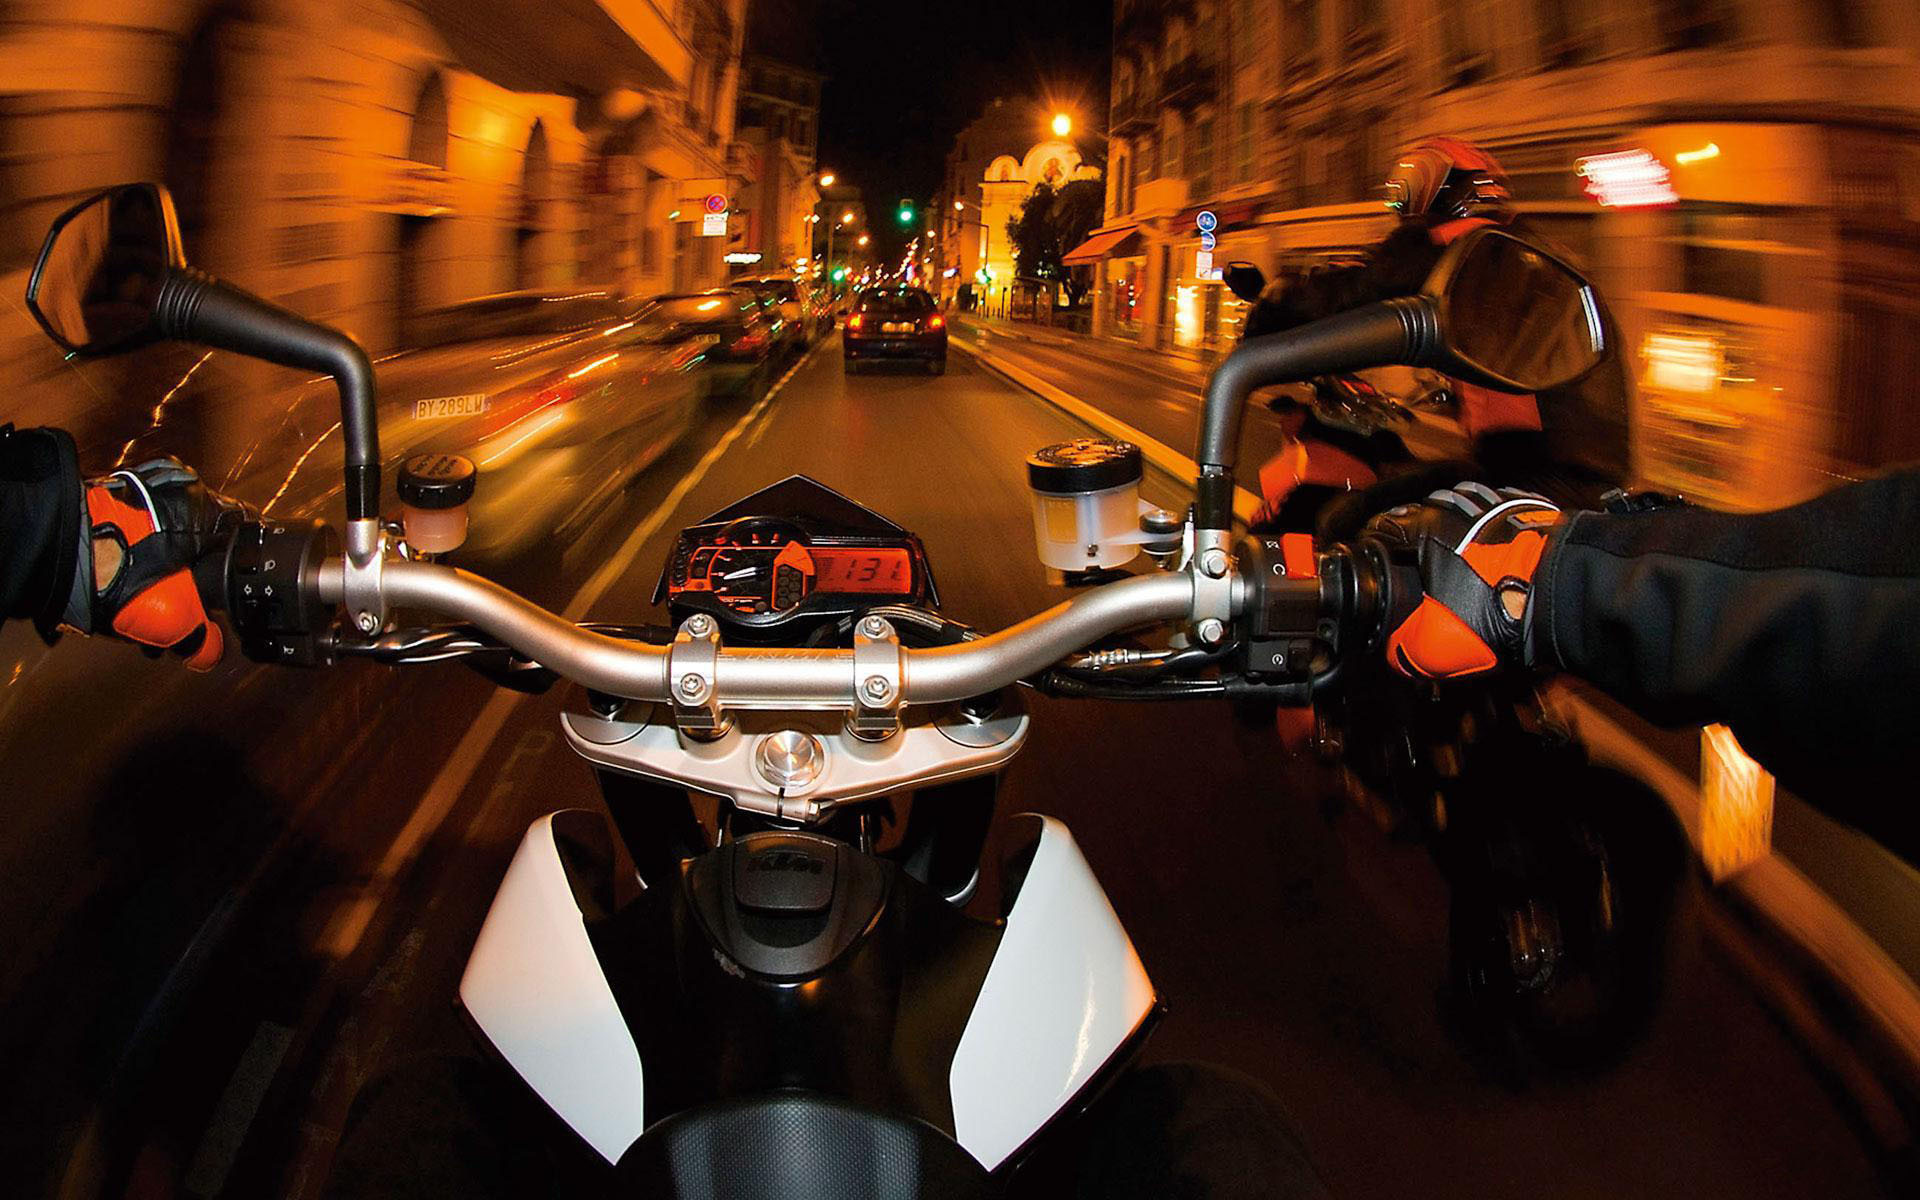 Ktm Duke 690 Wallpaper Ktm Super Duke 690 Pov Roads